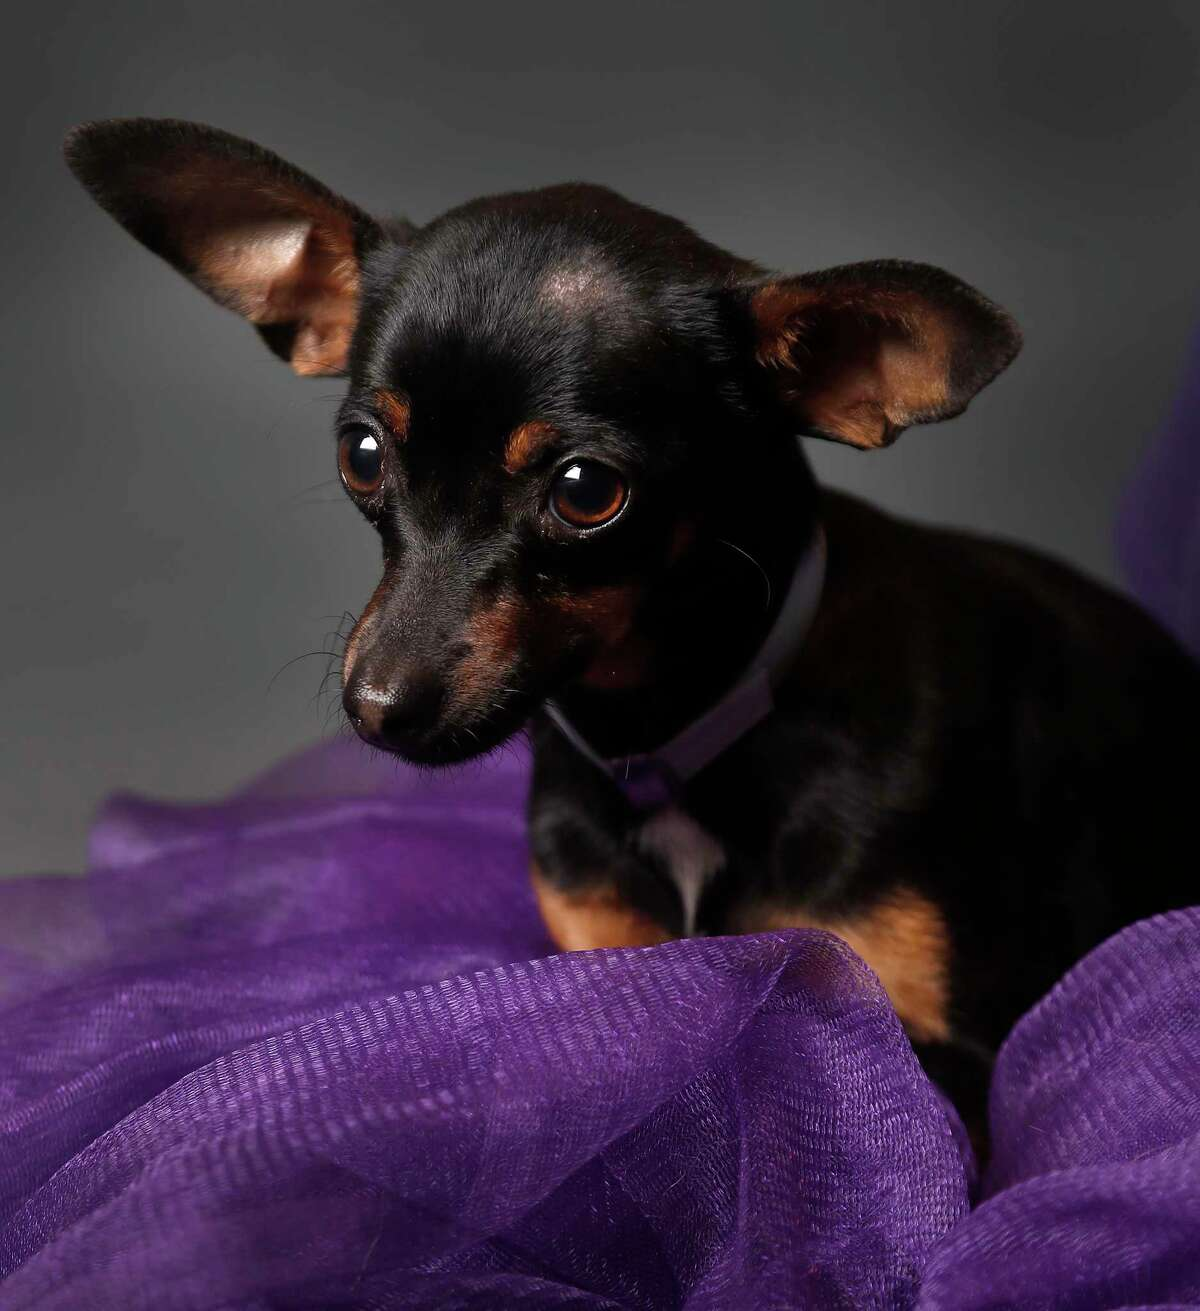 Raven is a 7-month-old, female, smooth-coat Miniature Pinscher/Chihuahua mix and is ready to be adopted from BARC Houston Animal Shelter. (Animal ID: A1610698) Photographed Wednesday, Feb. 27, 2019, in Houston.